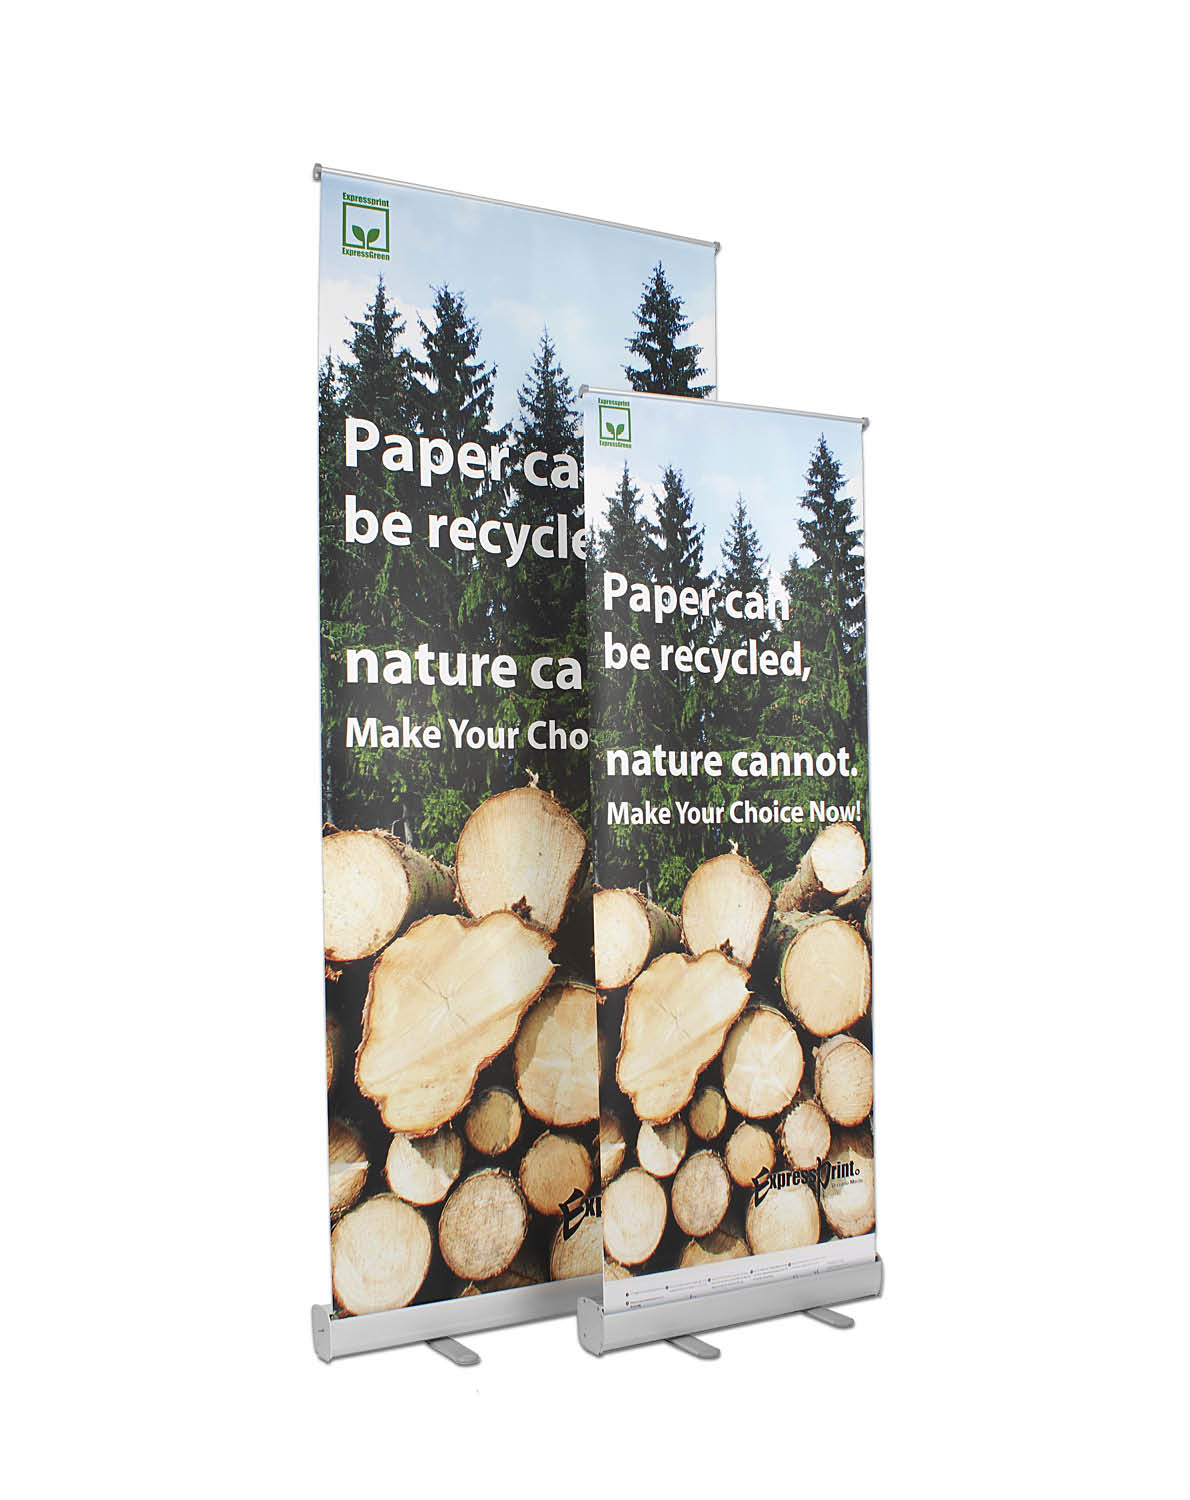 Rollup-stand, banner stand, large format print, uv ink